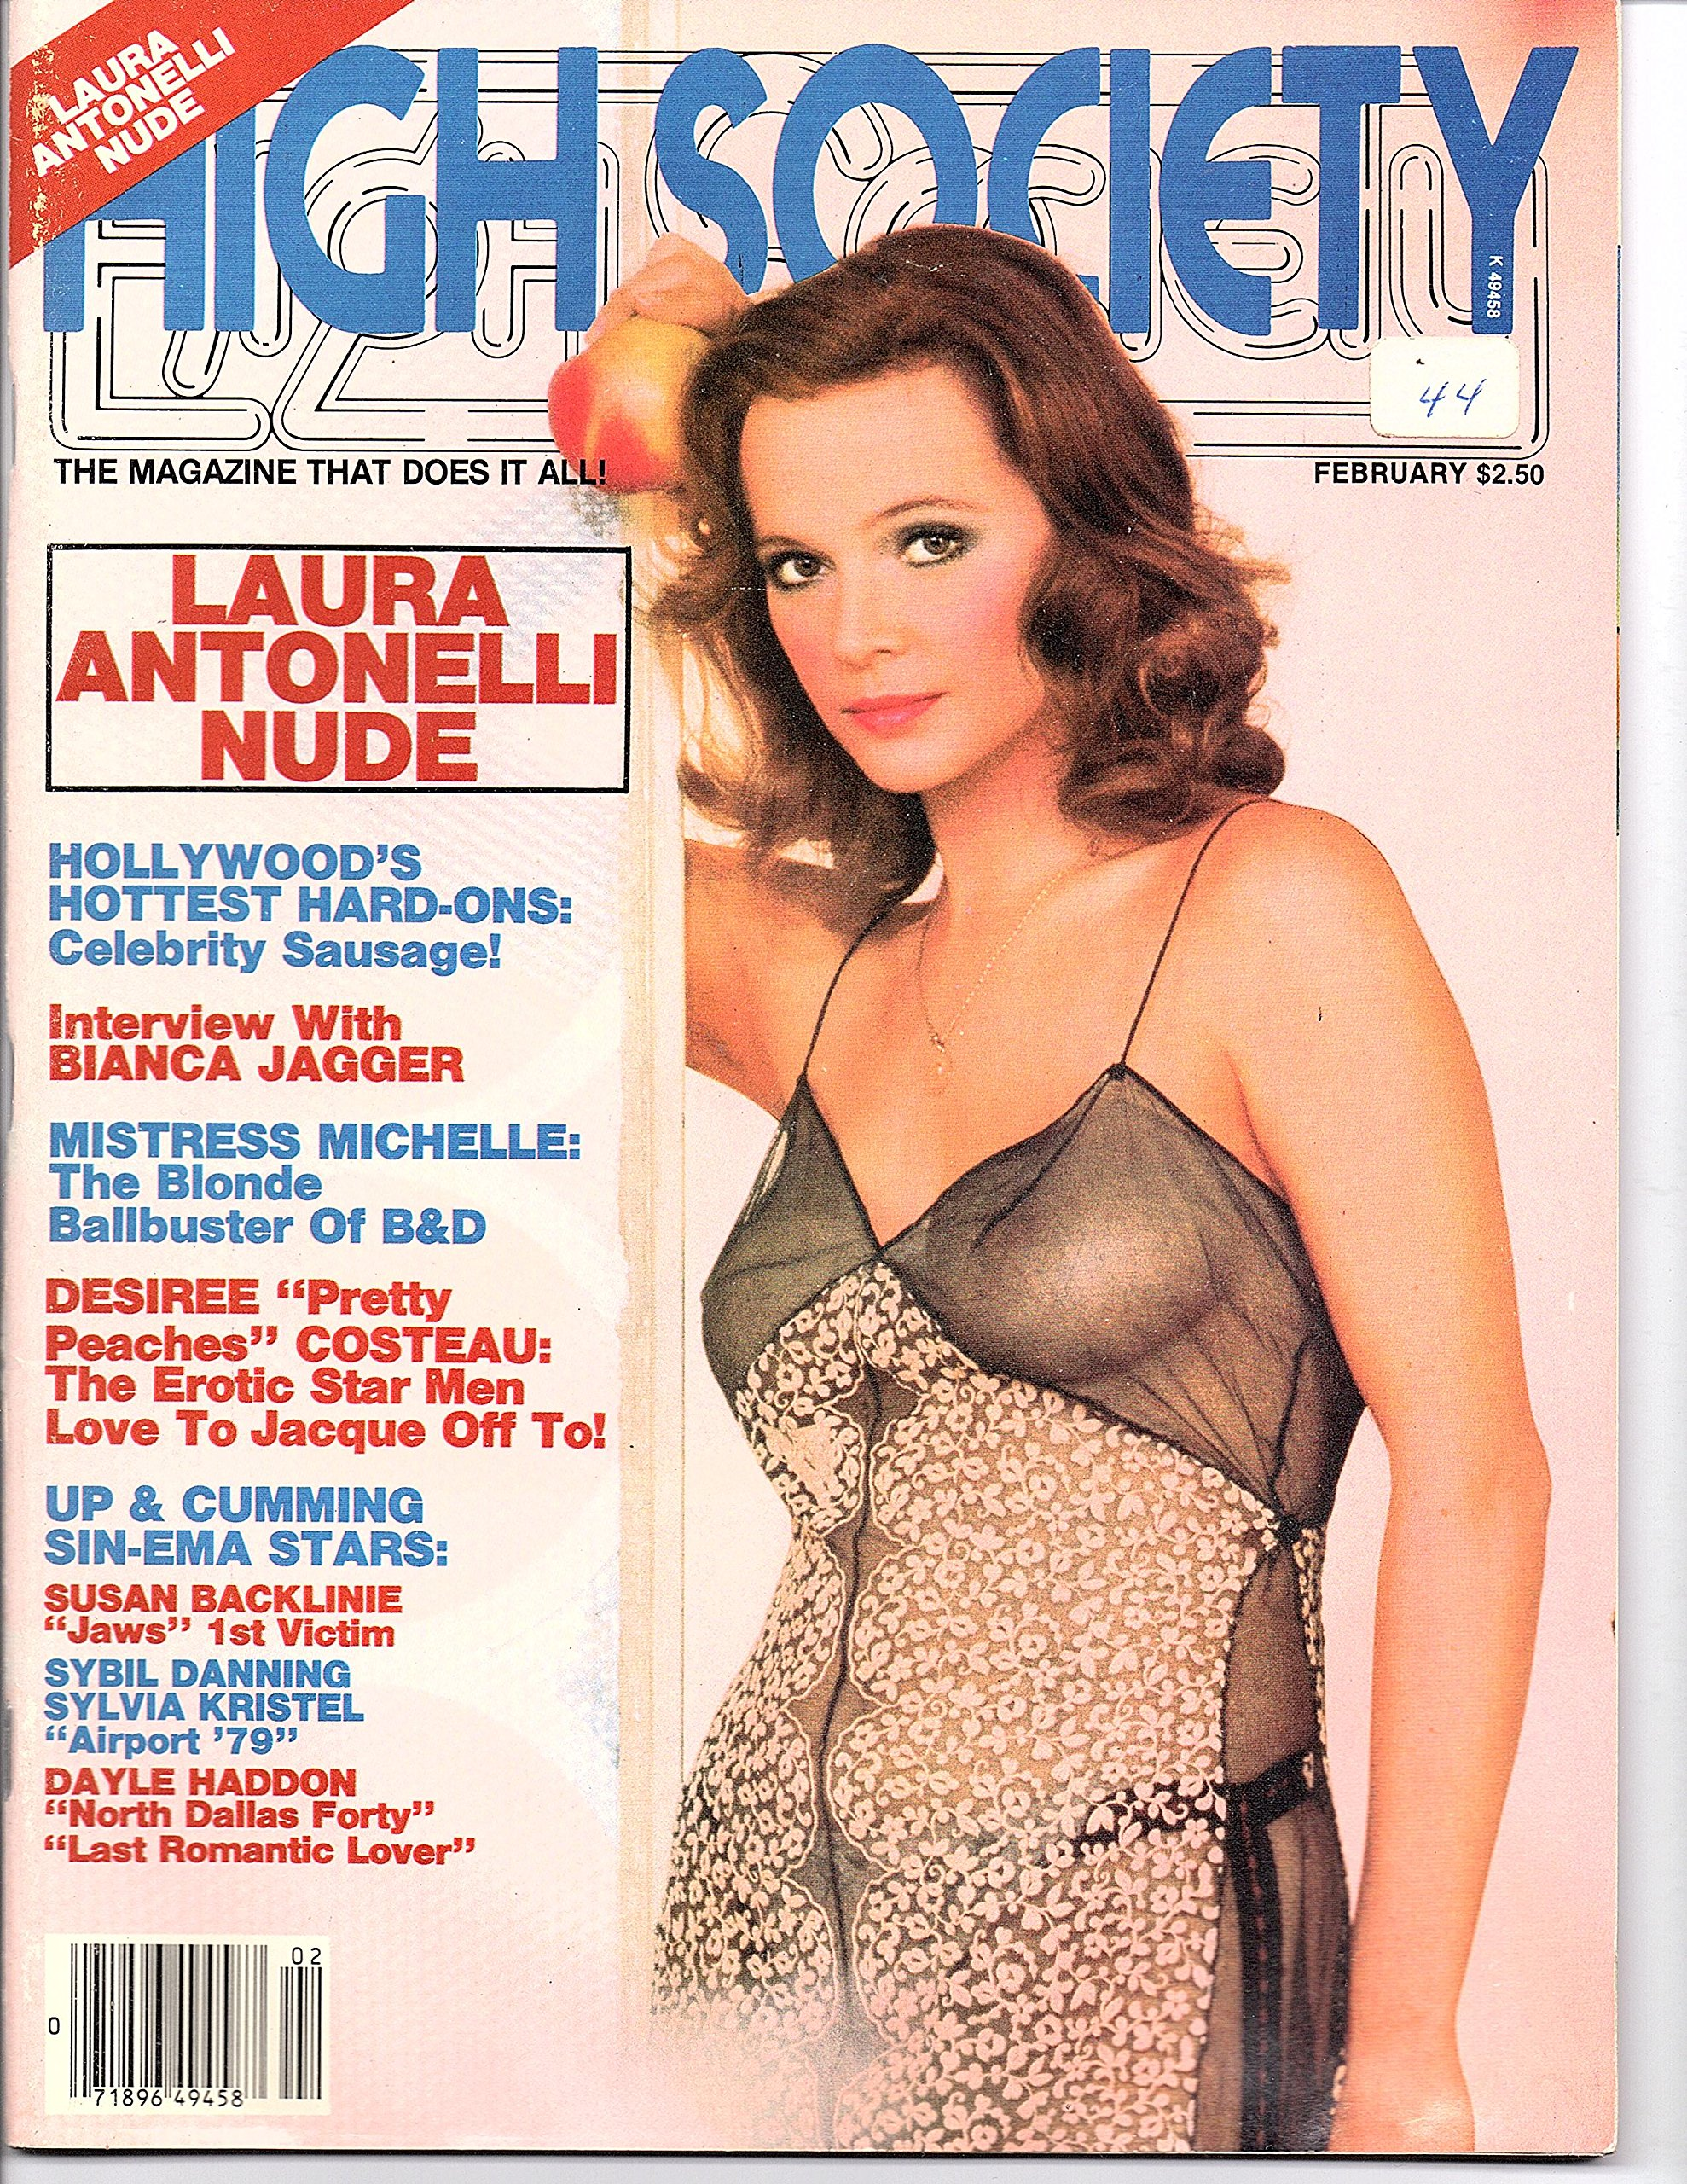 Annette haven story from vintage magazines middle